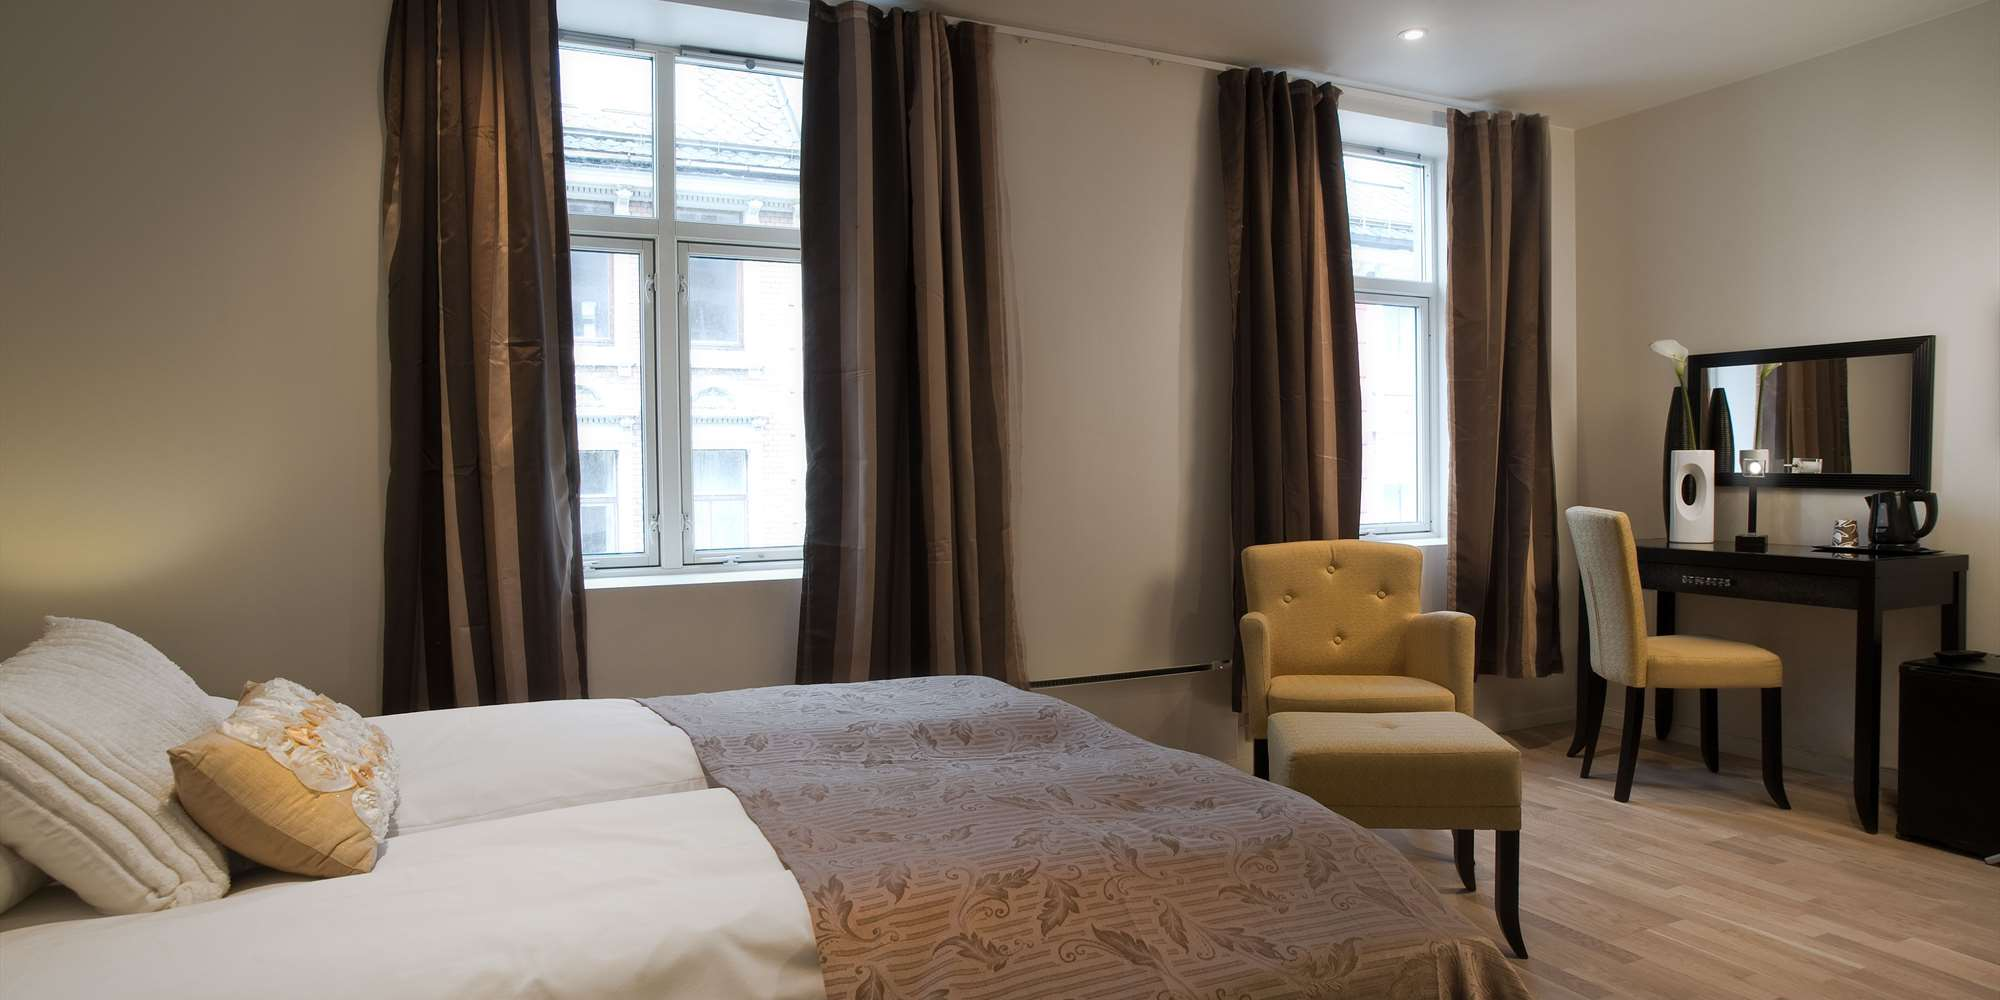 Basic Hotel Bergen - Double room Large